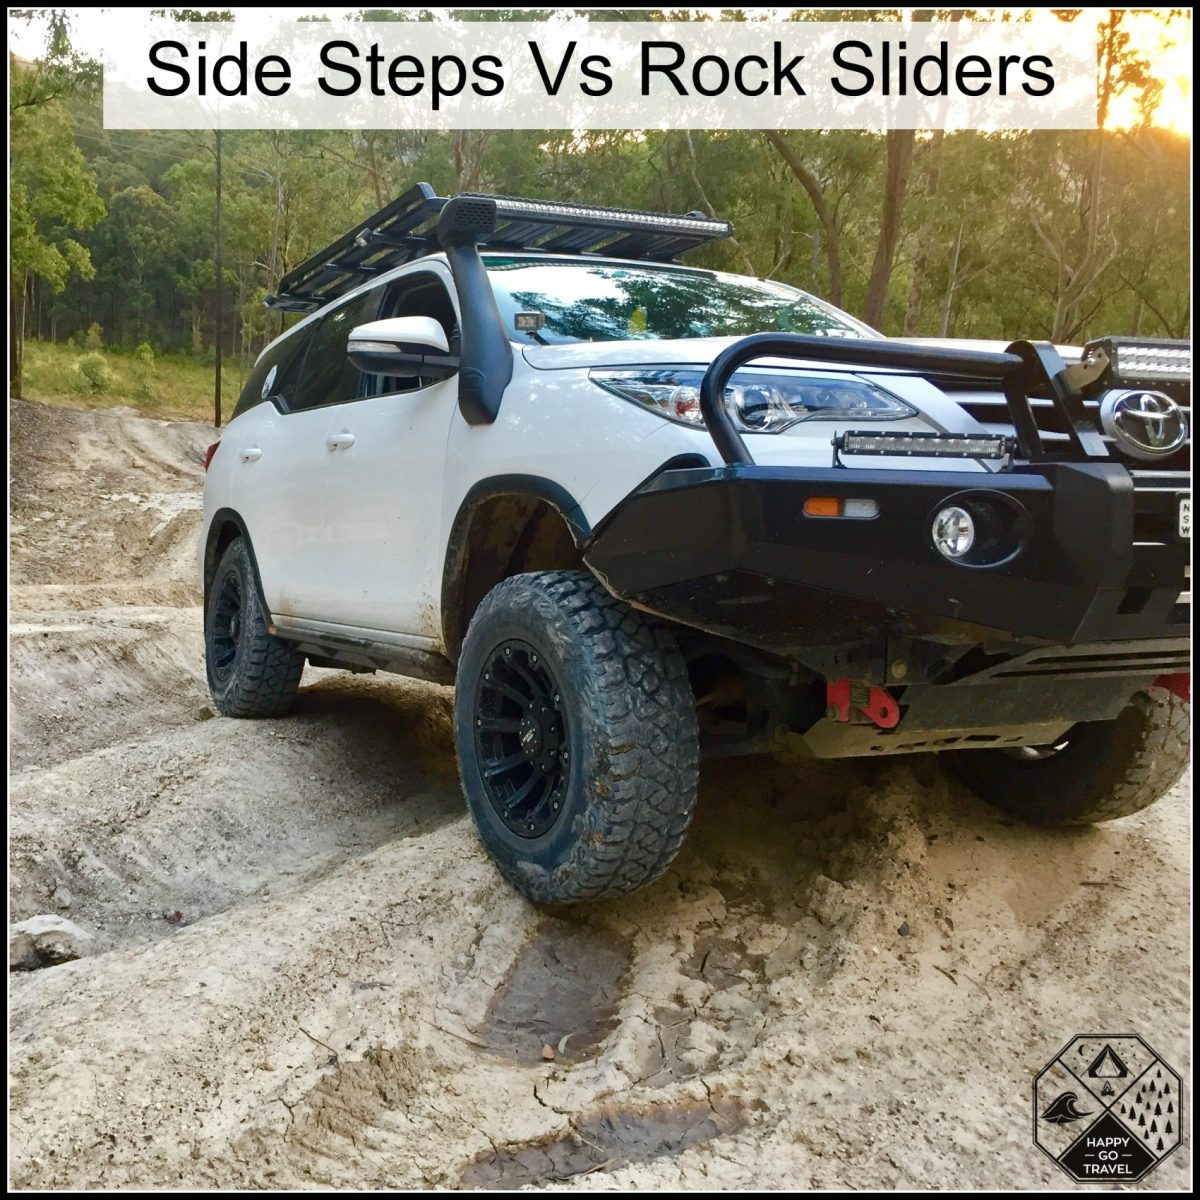 Side Steps Vs Rock Sliders